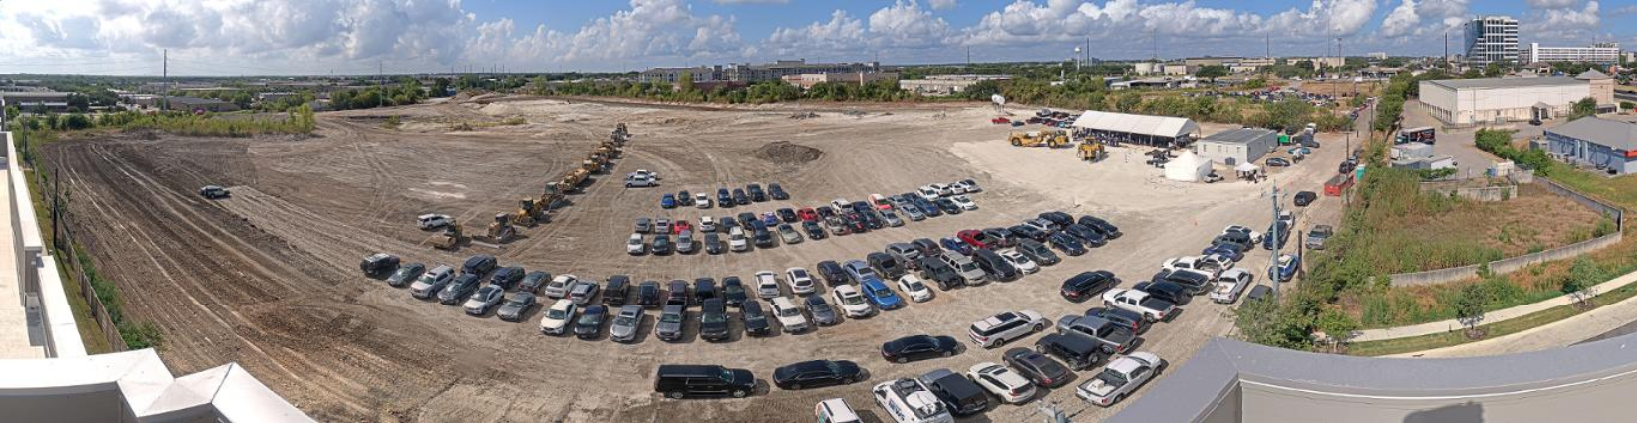 Austin FC groundbreaking aerial view